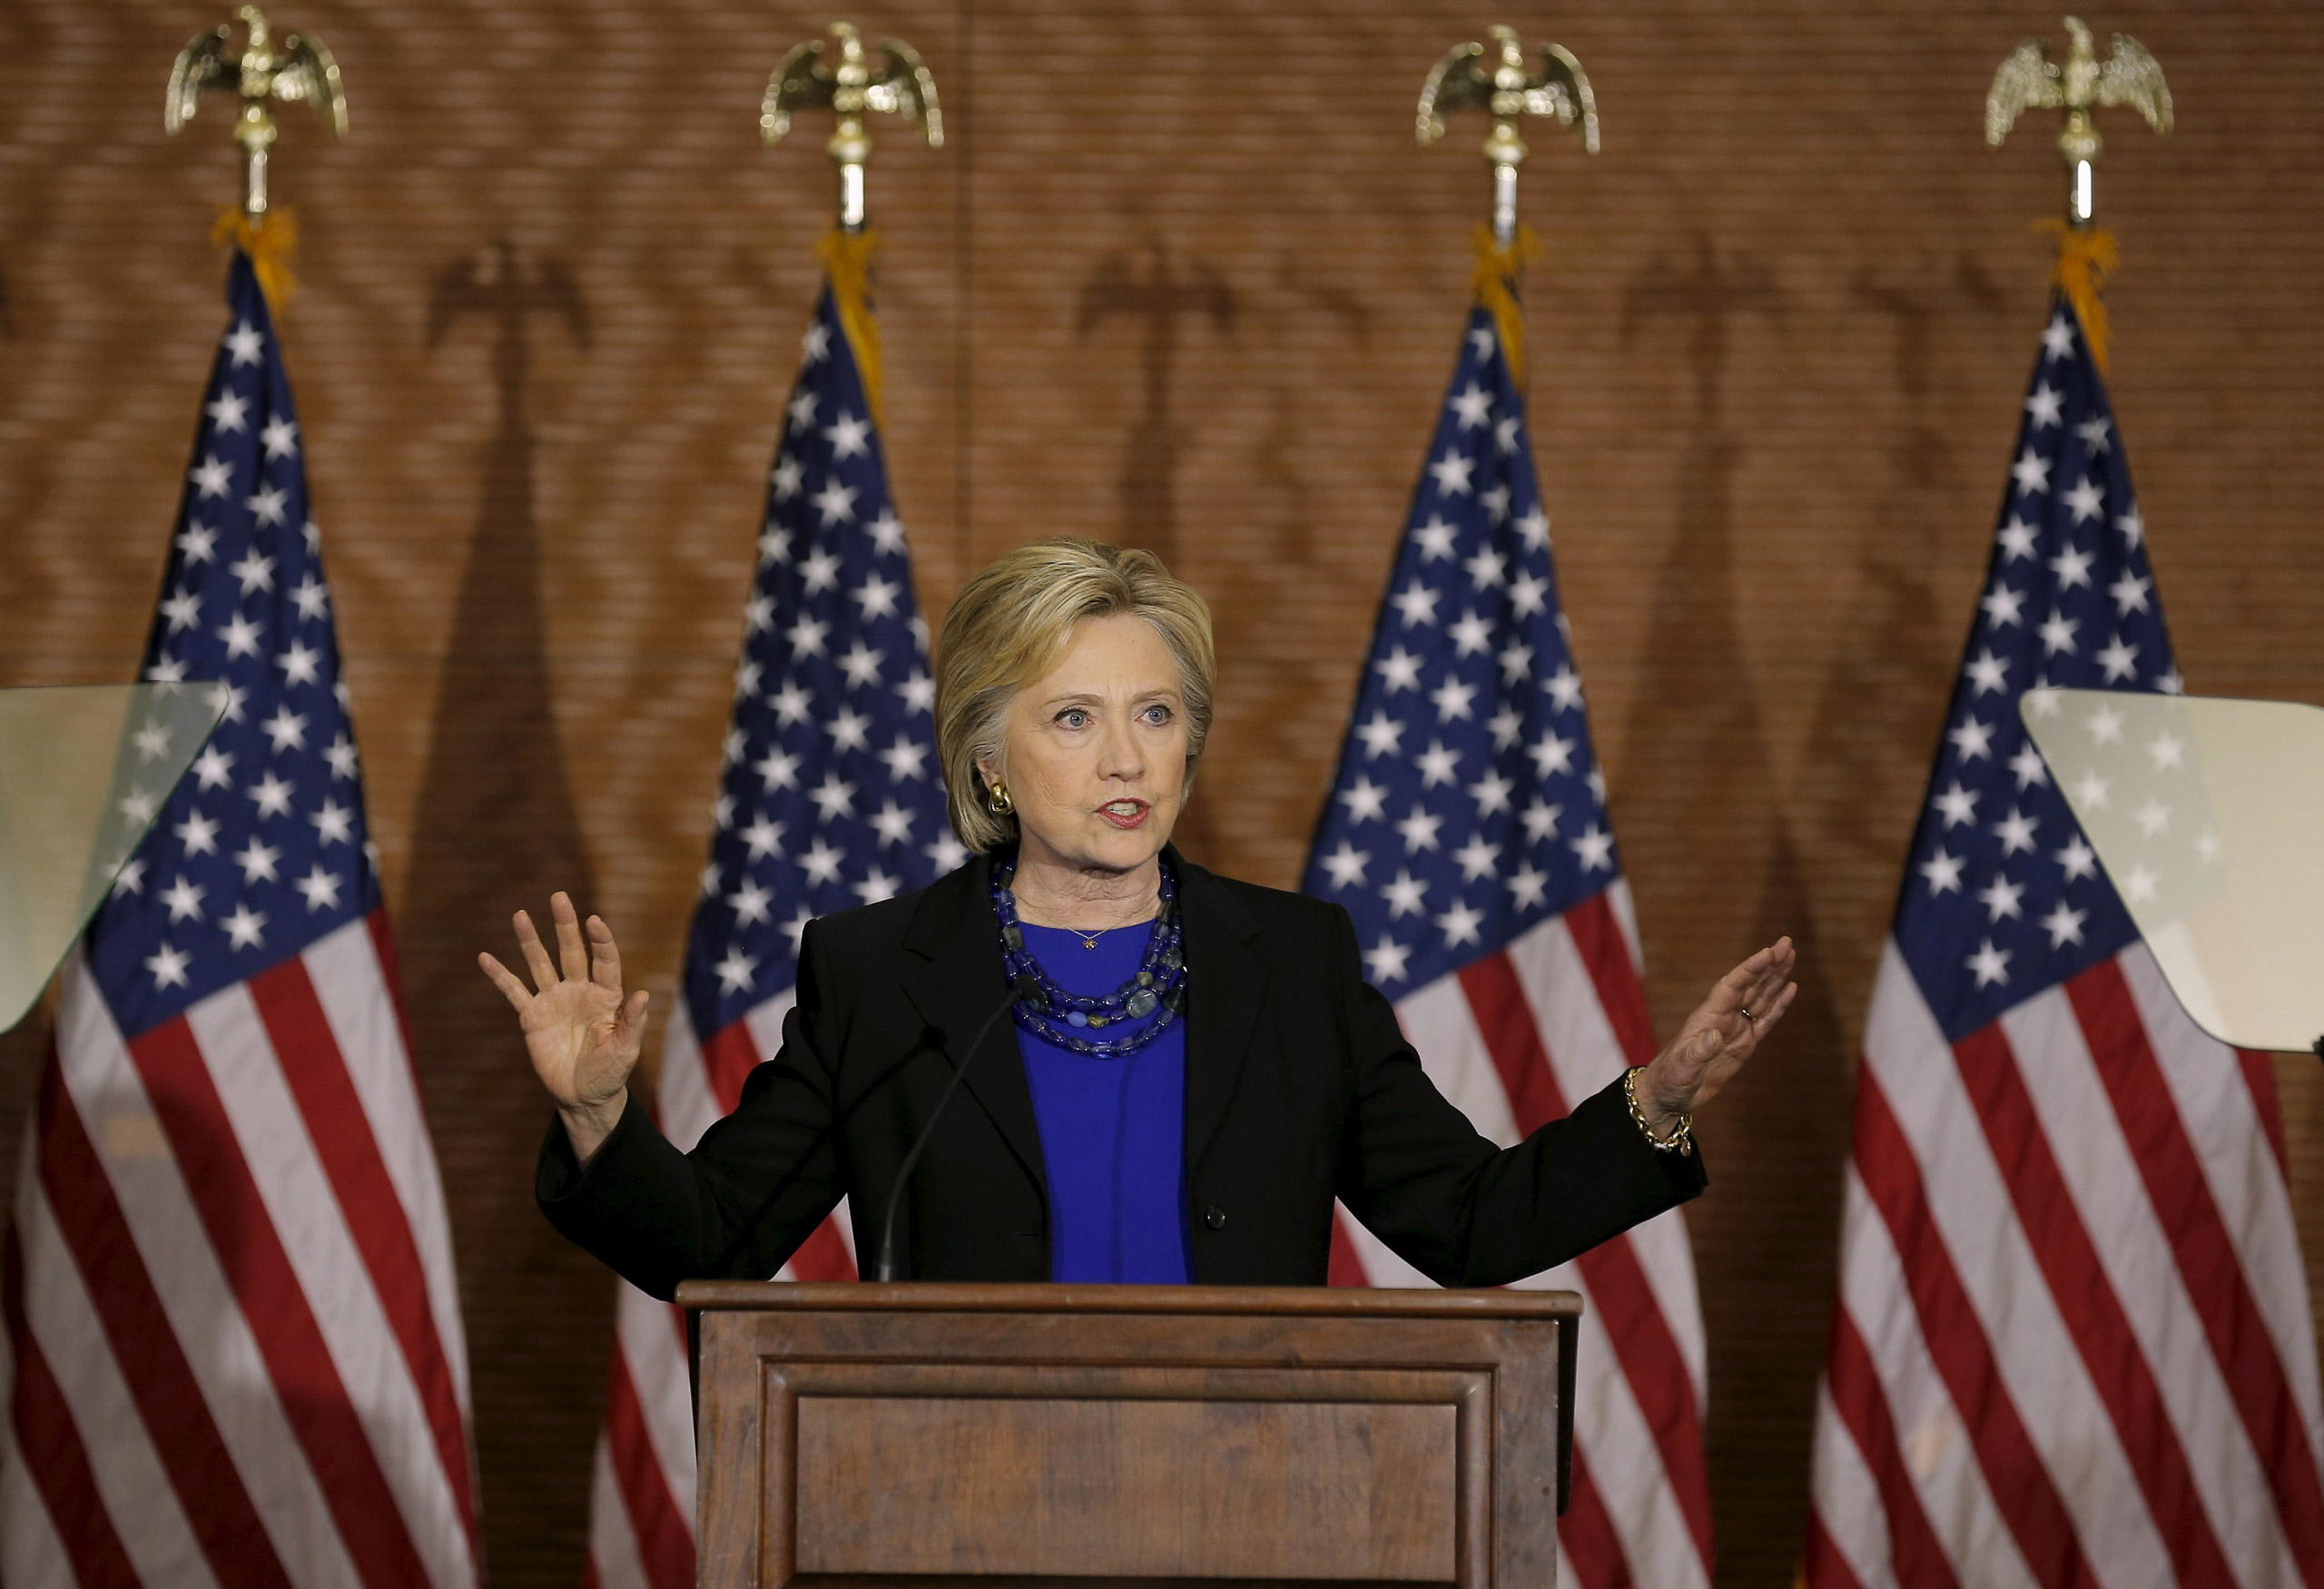 Democratic presidential candidate Hillary Clinton speaks at a campaign event in Madison, Wisconsin, on Mar. 28, 2016.